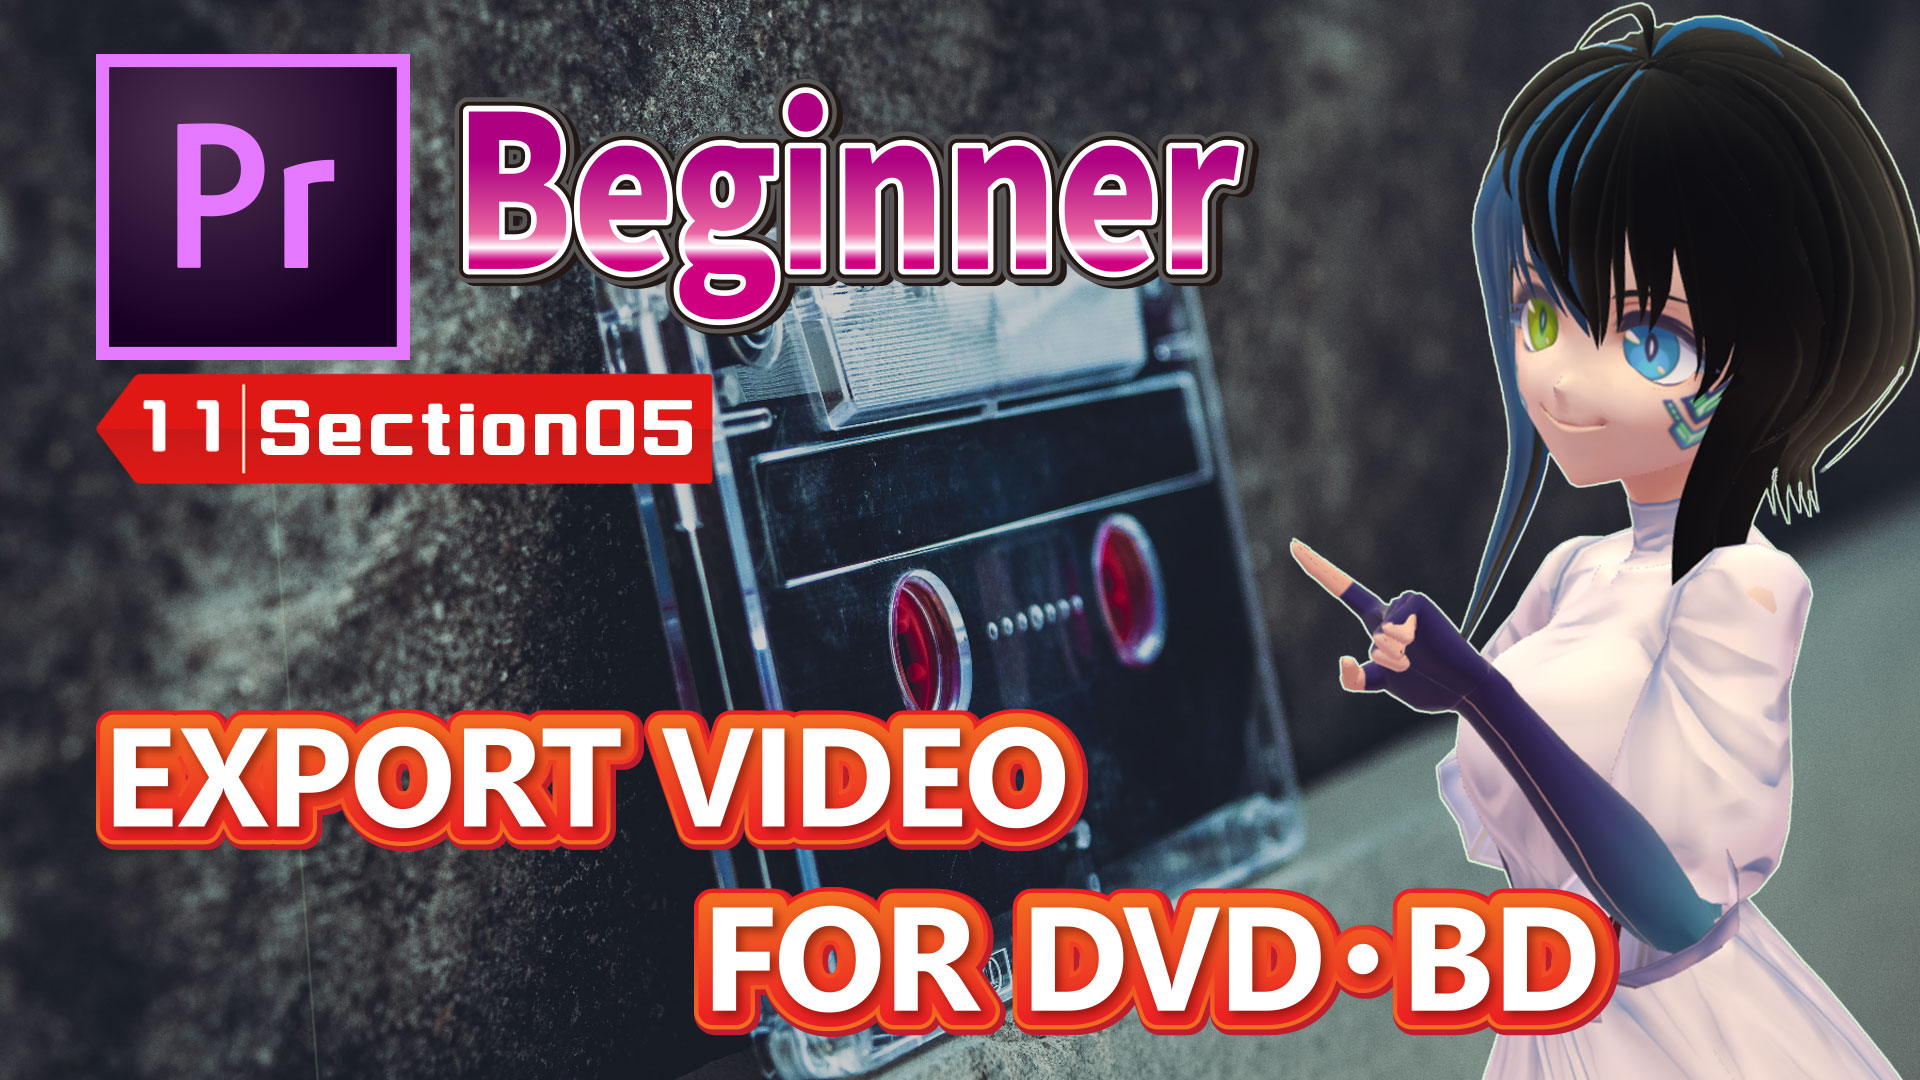 EXPORT VIDEO FOR DVD・BD